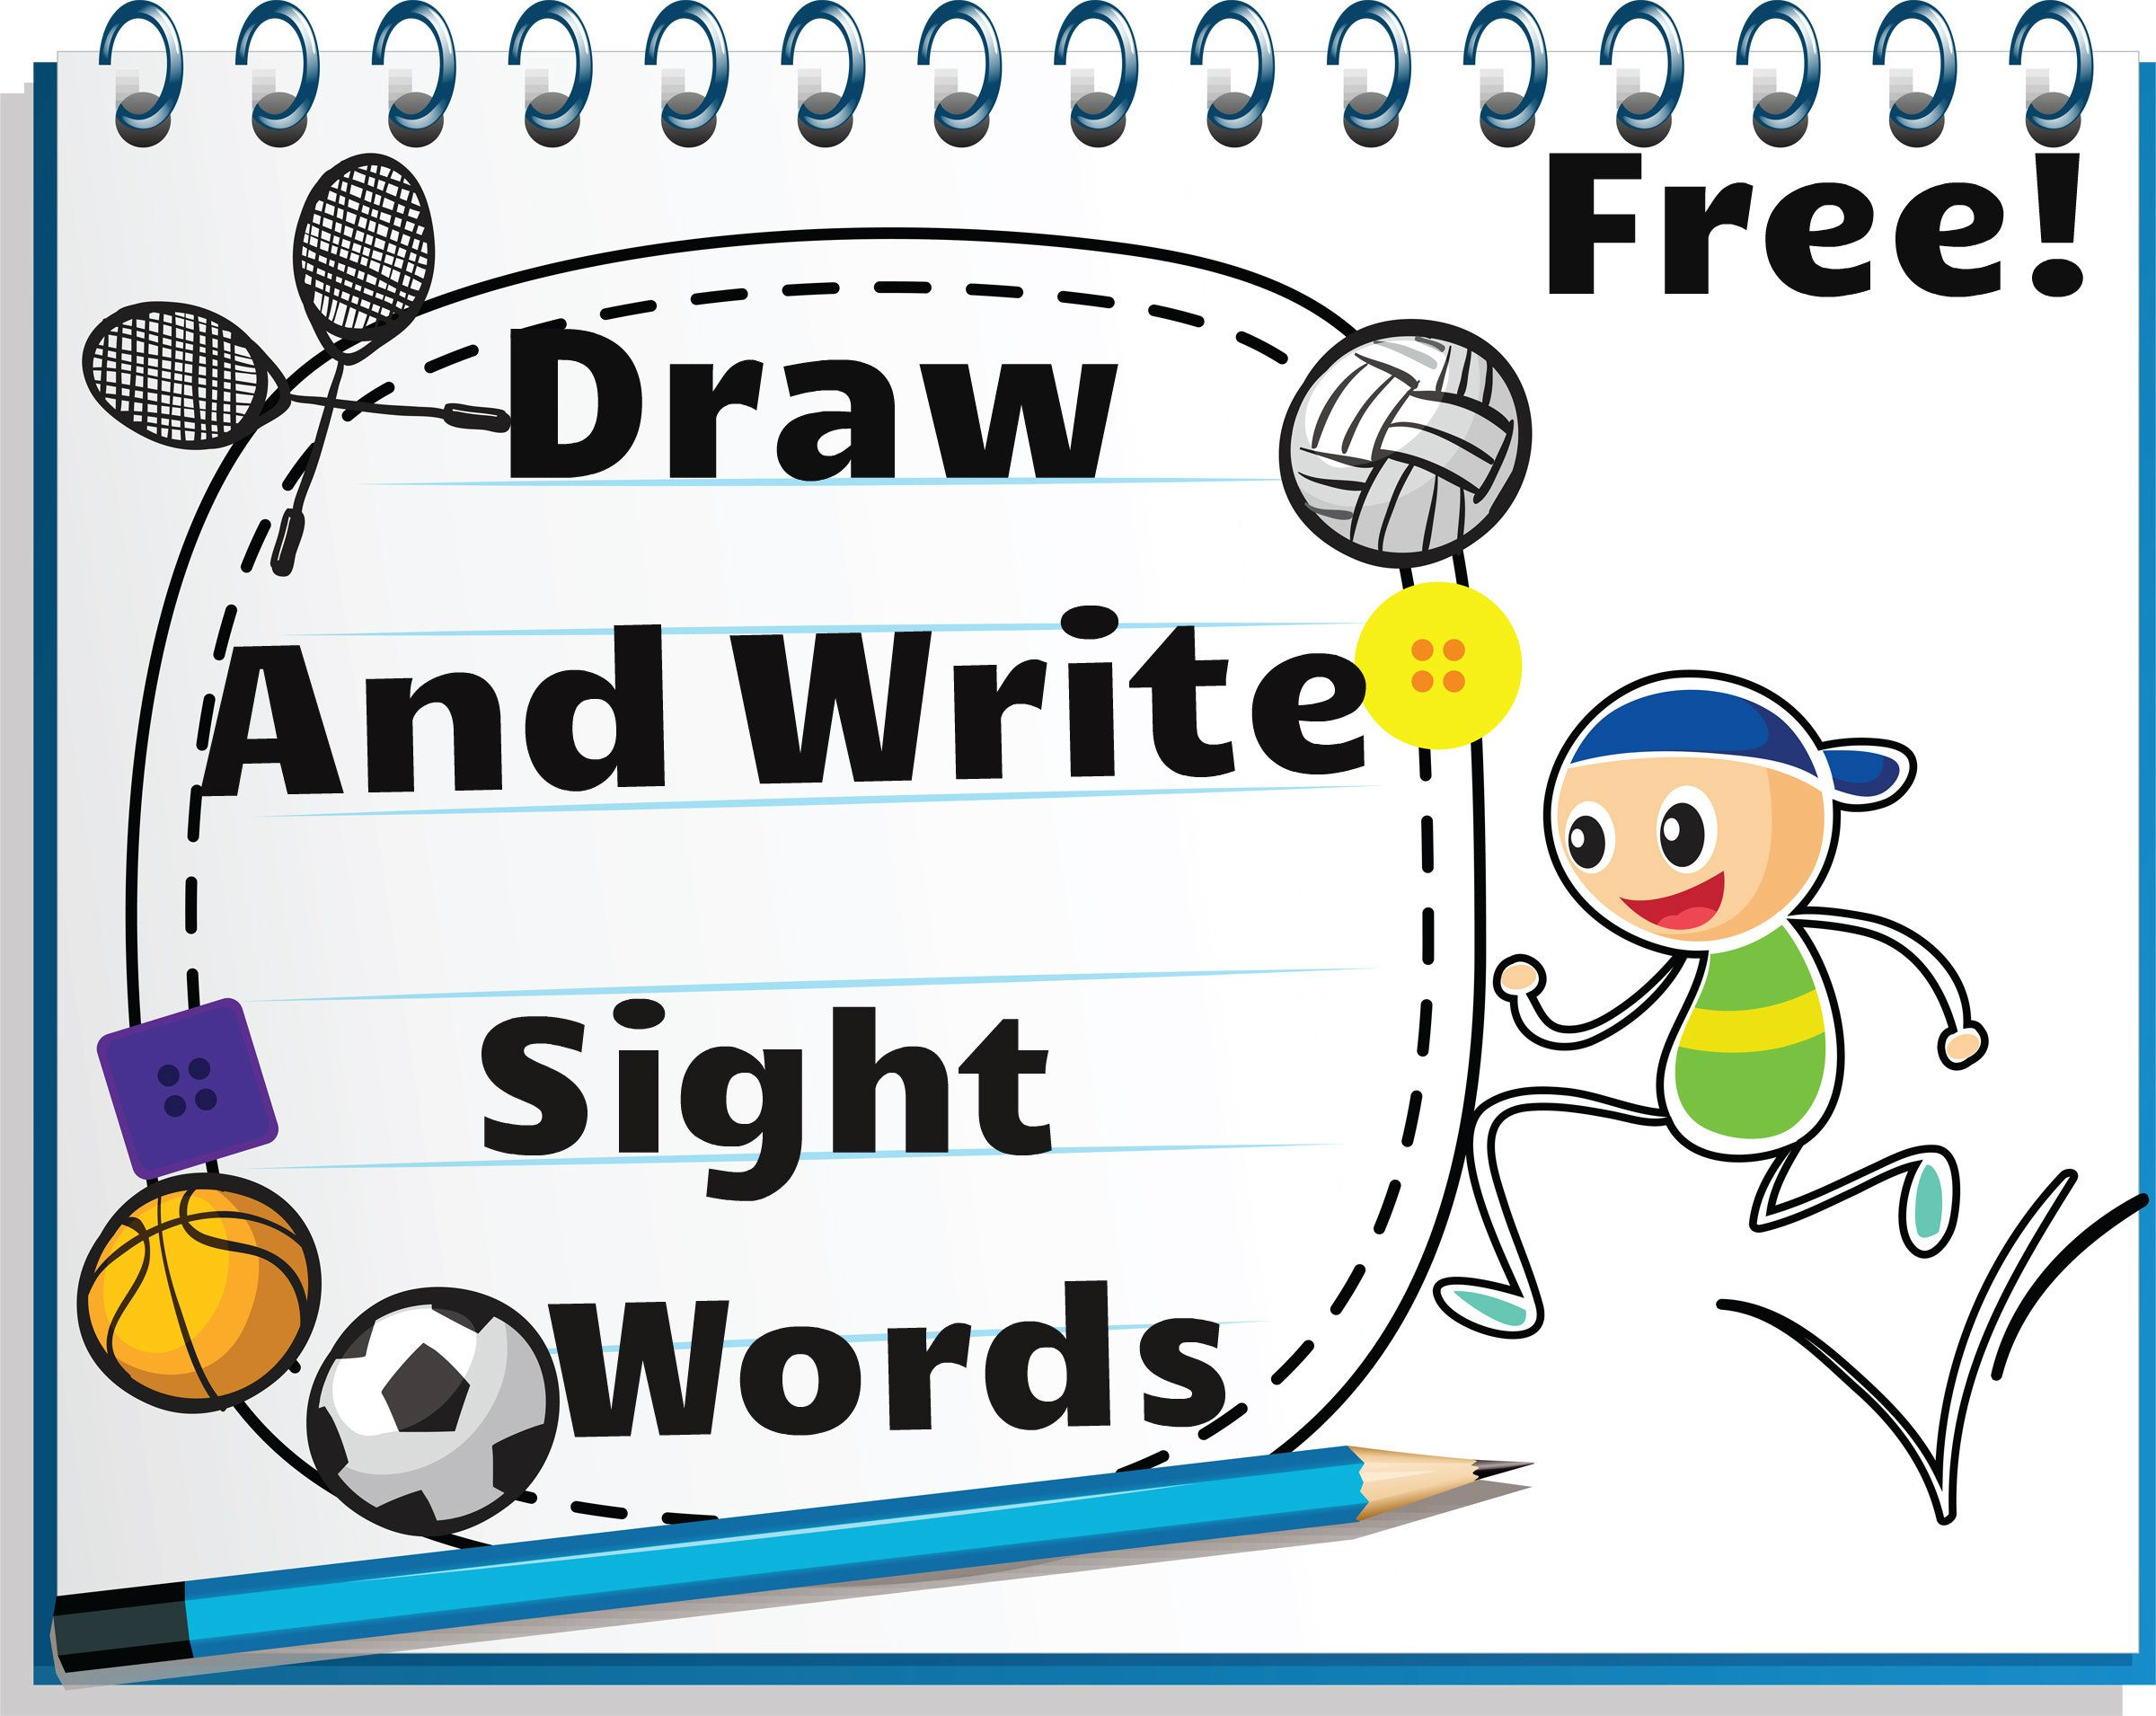 Draw And Write Sight Words Worksheets Great Resource To